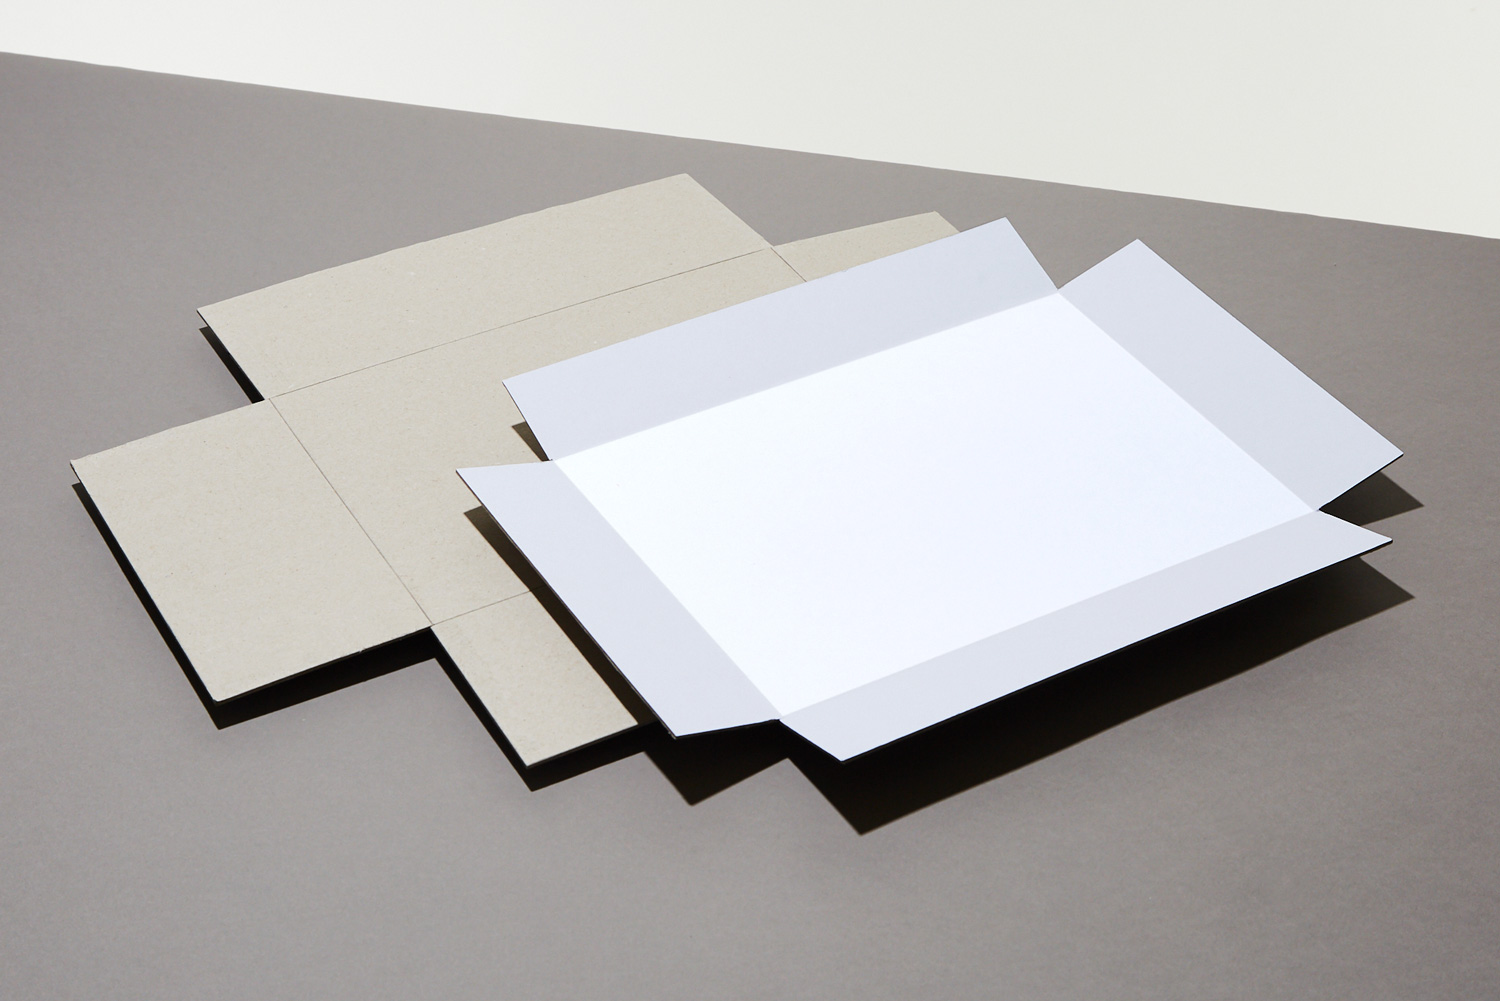 Progress Packaging Greyboard Paper Over Board Luxury Custom Shoulder Box Boxes Manufacture Scored Folded Lid And Base